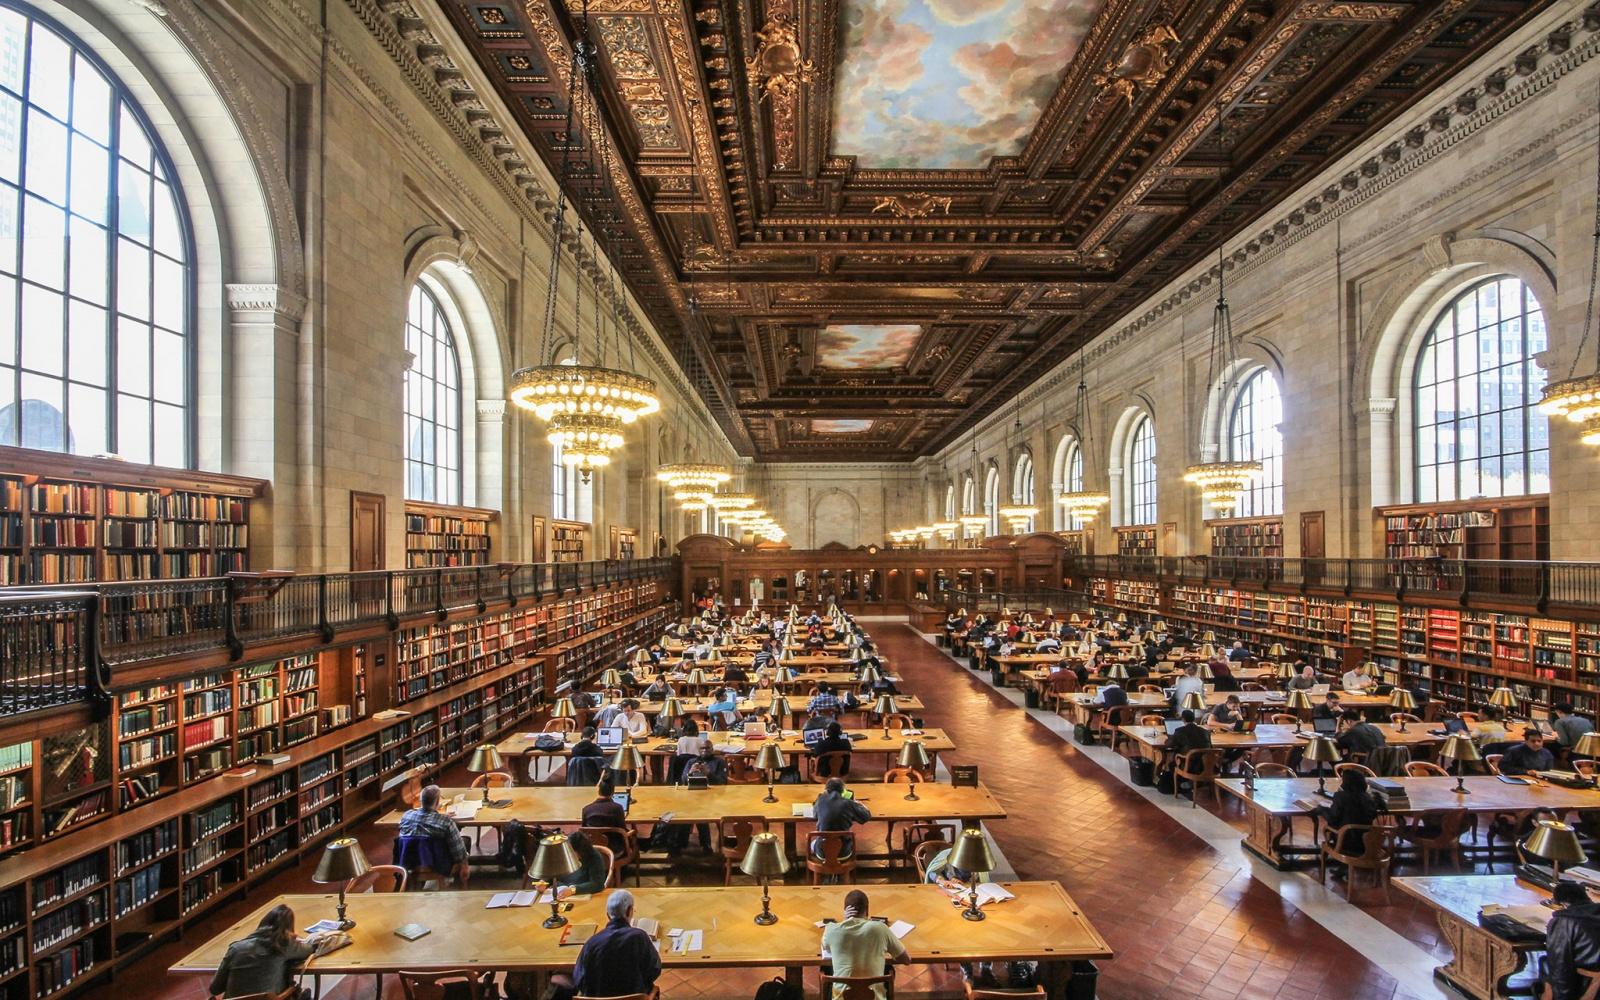 New York Public Library (Stephen A. Schwarzman Building)